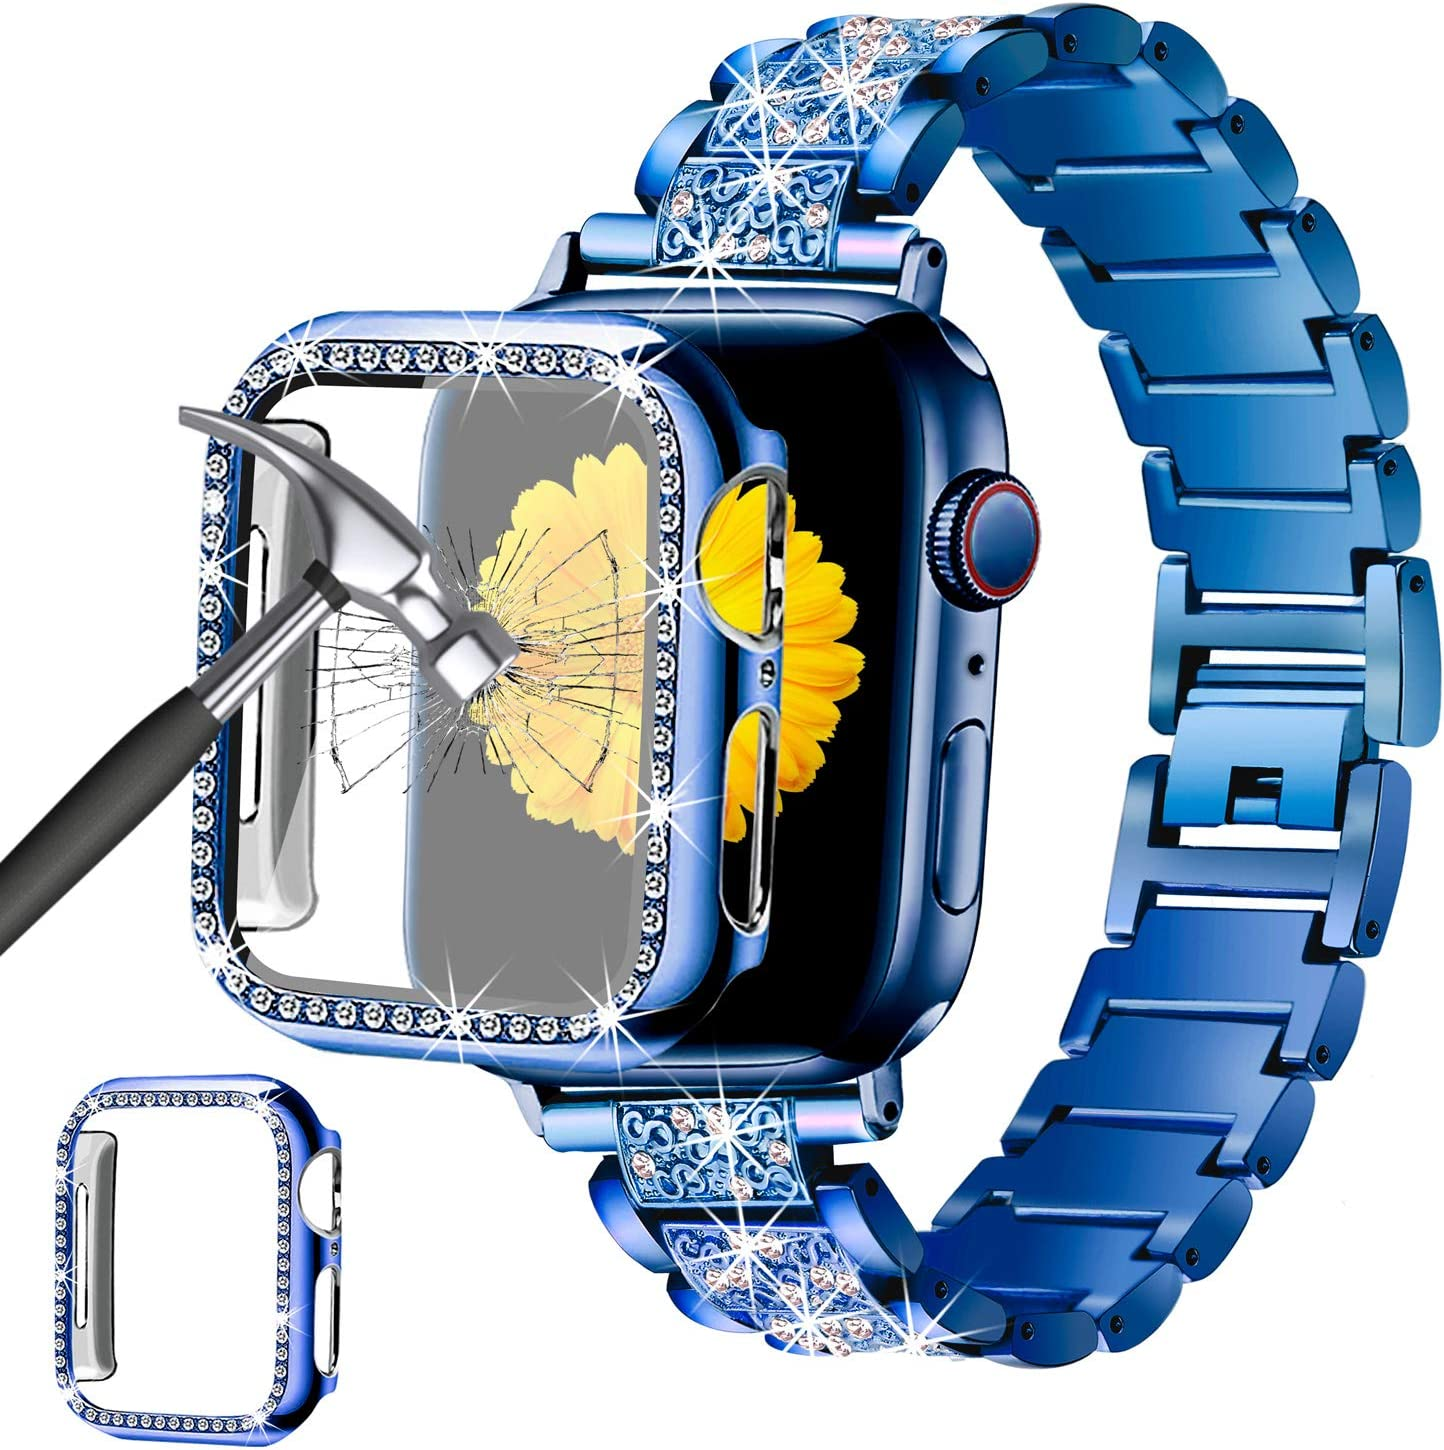 Mesime Compatible for Apple Watch Band 38mm 40mm 42mm 44mm with Screen Protector Case, Jewelry Replacement Metal Band & 2-Pack Bling Full Cover Protective Case for iWatch Series 6/5/4/3/2/1(Blue)